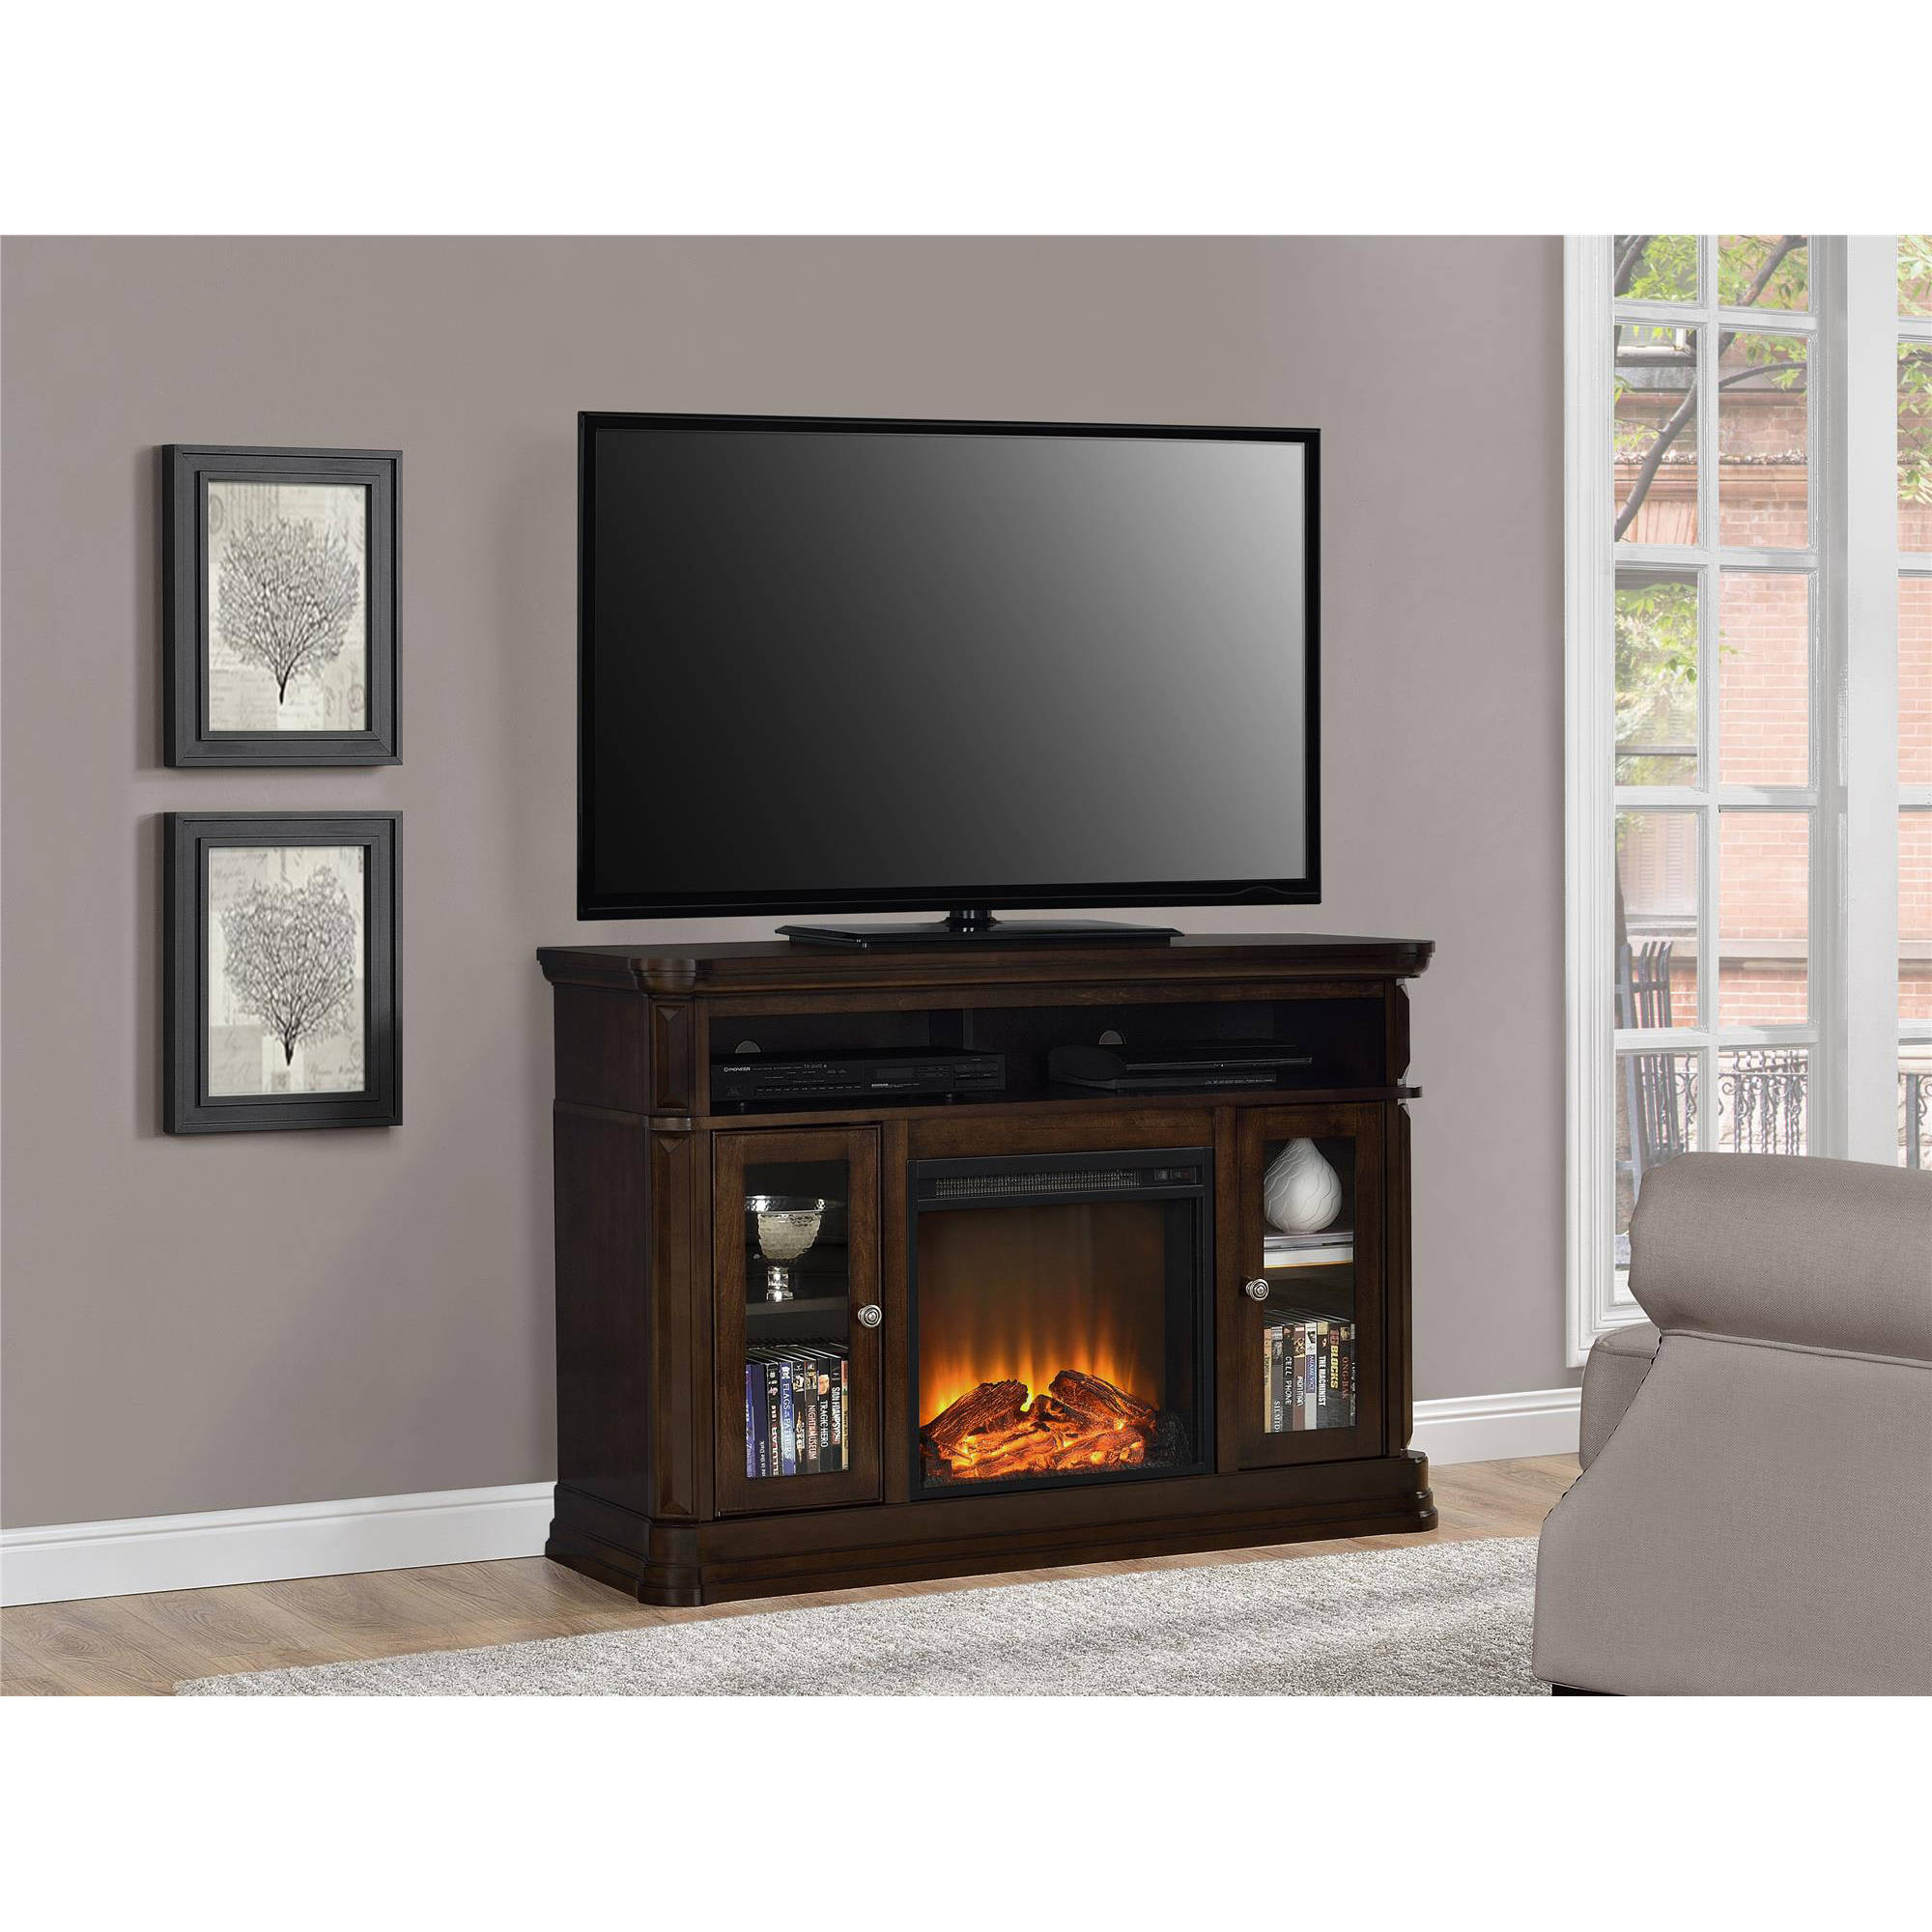 Mahogany Electric Fireplaces - Electric fireplace tv